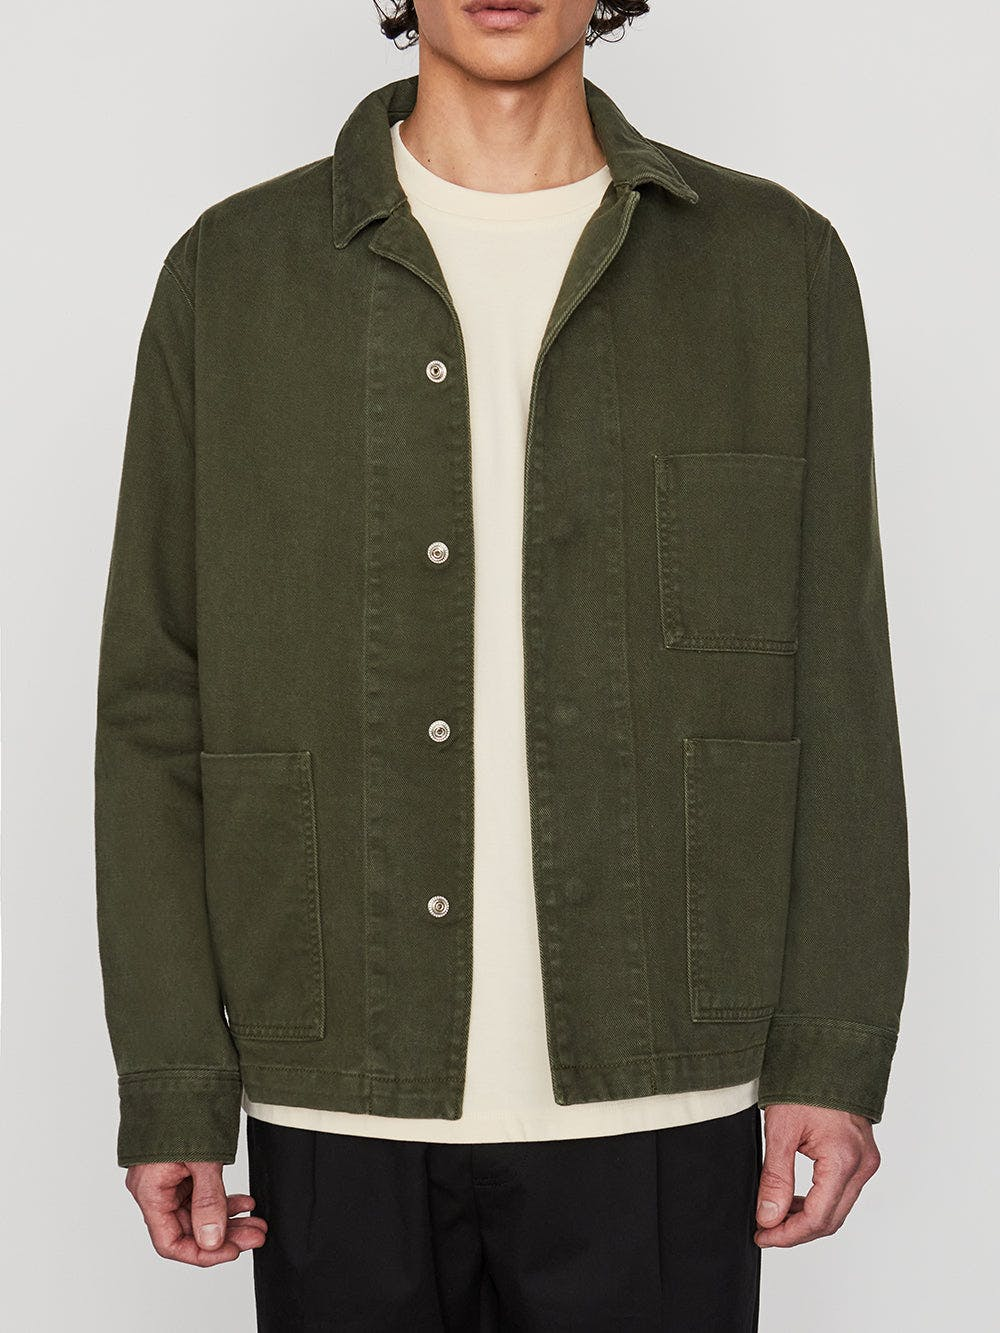 jacket front detail view